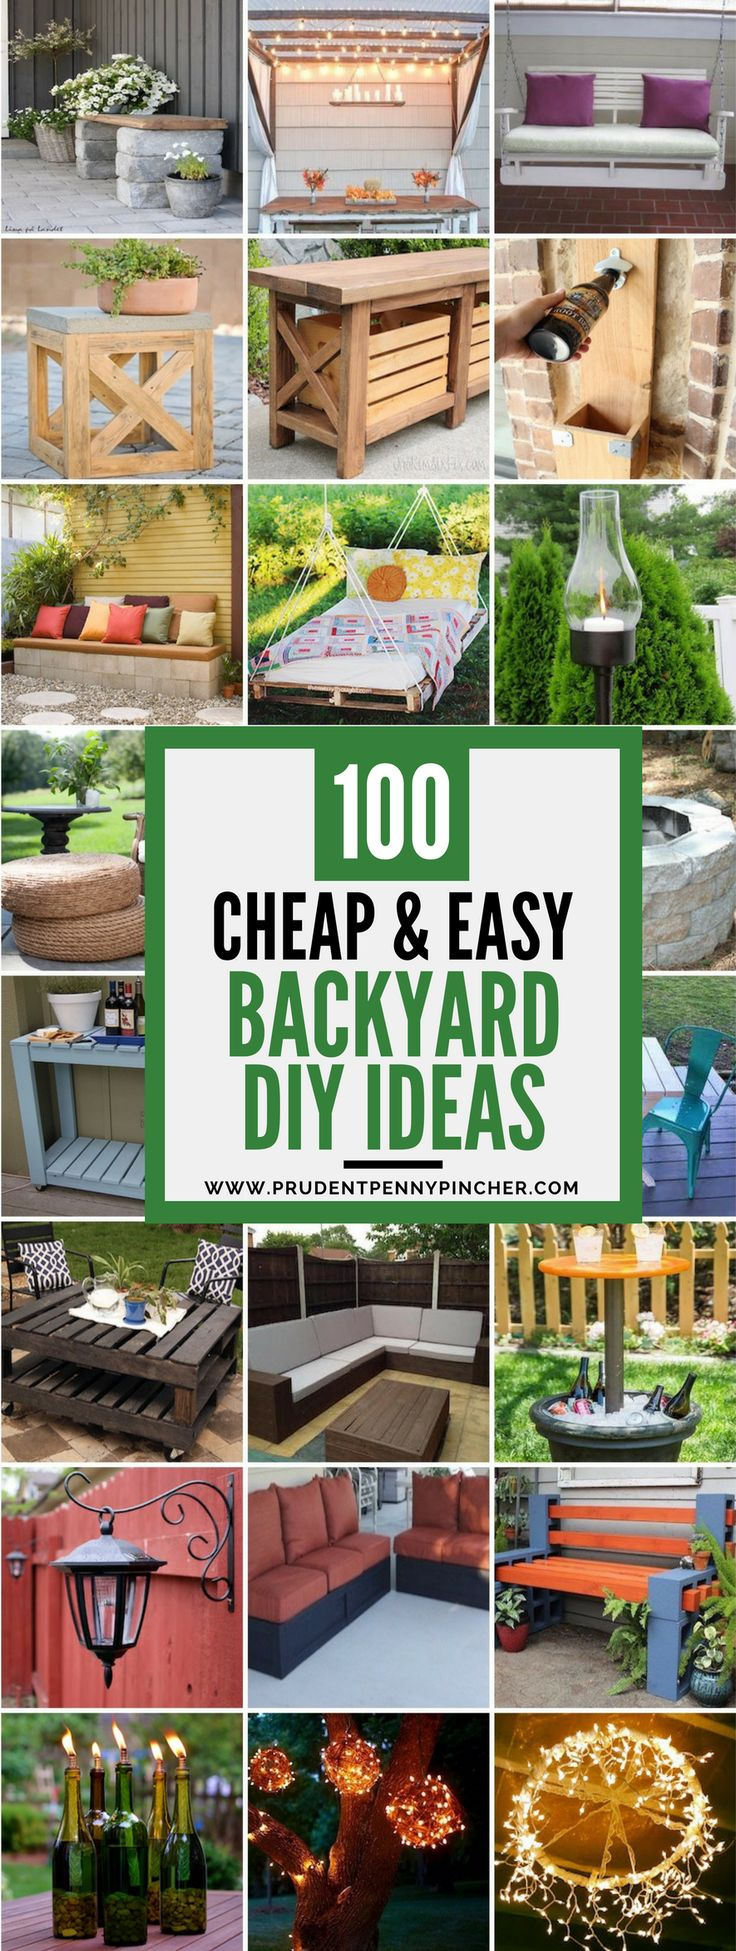 100 Cheap and Easy DIY Backyard Ideas